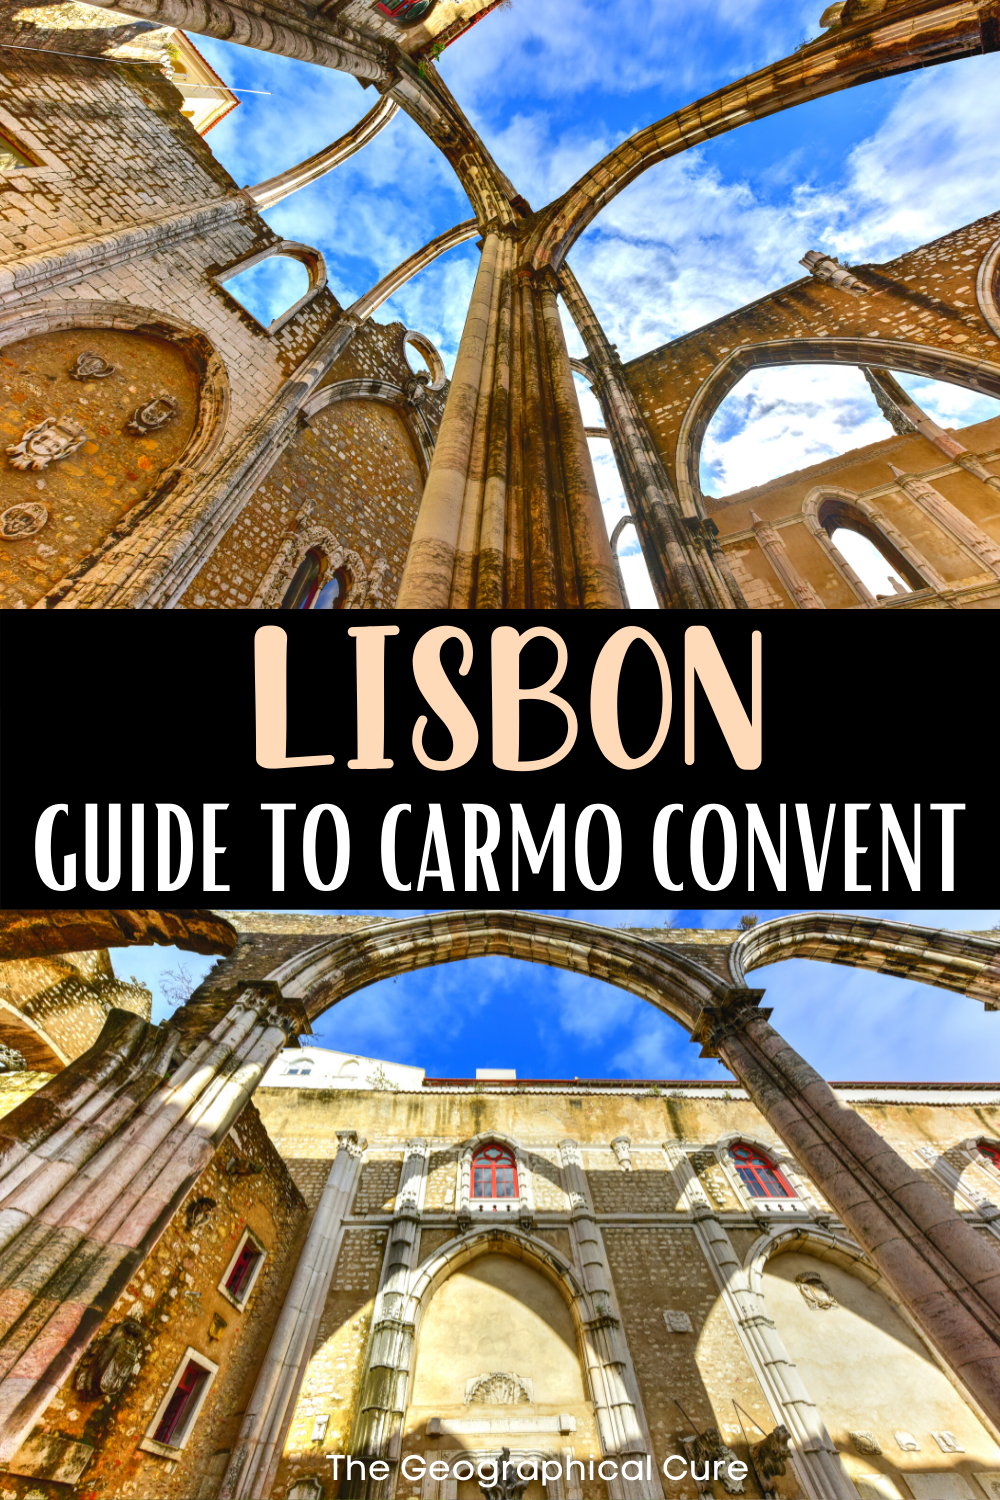 guide to the ruins of Lisbon's haunting Carmo Convent